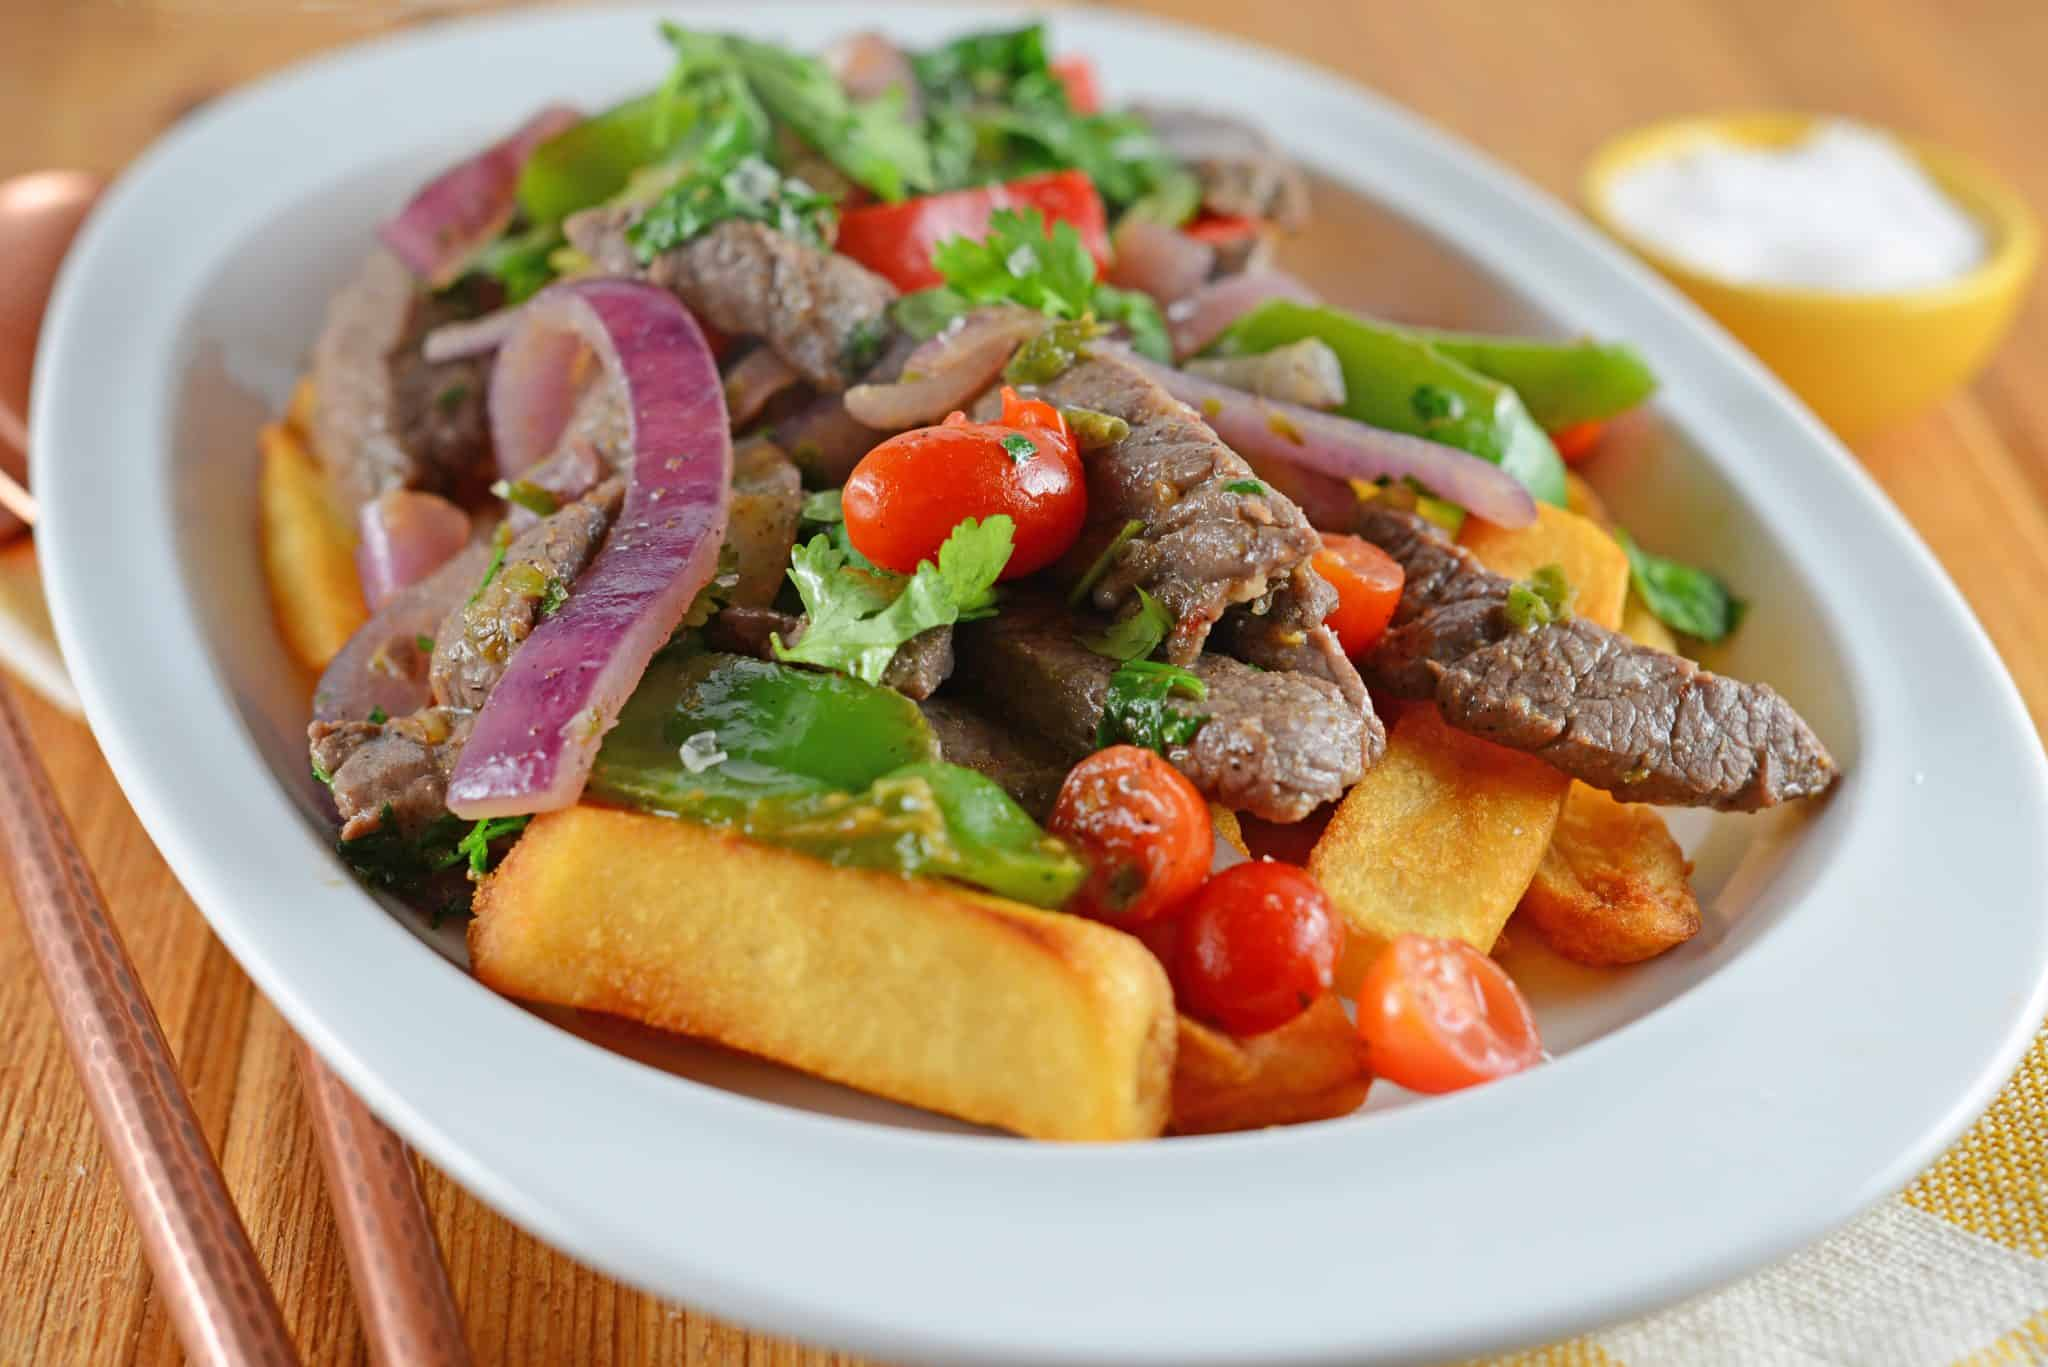 Lomo Saltado is a Peruvian dish using tender steak, onions, tomatoes, bell peppers and jalapenos over crispy French fries. #lomosaltado #steakandpotatoes www.savoryexperiments.com